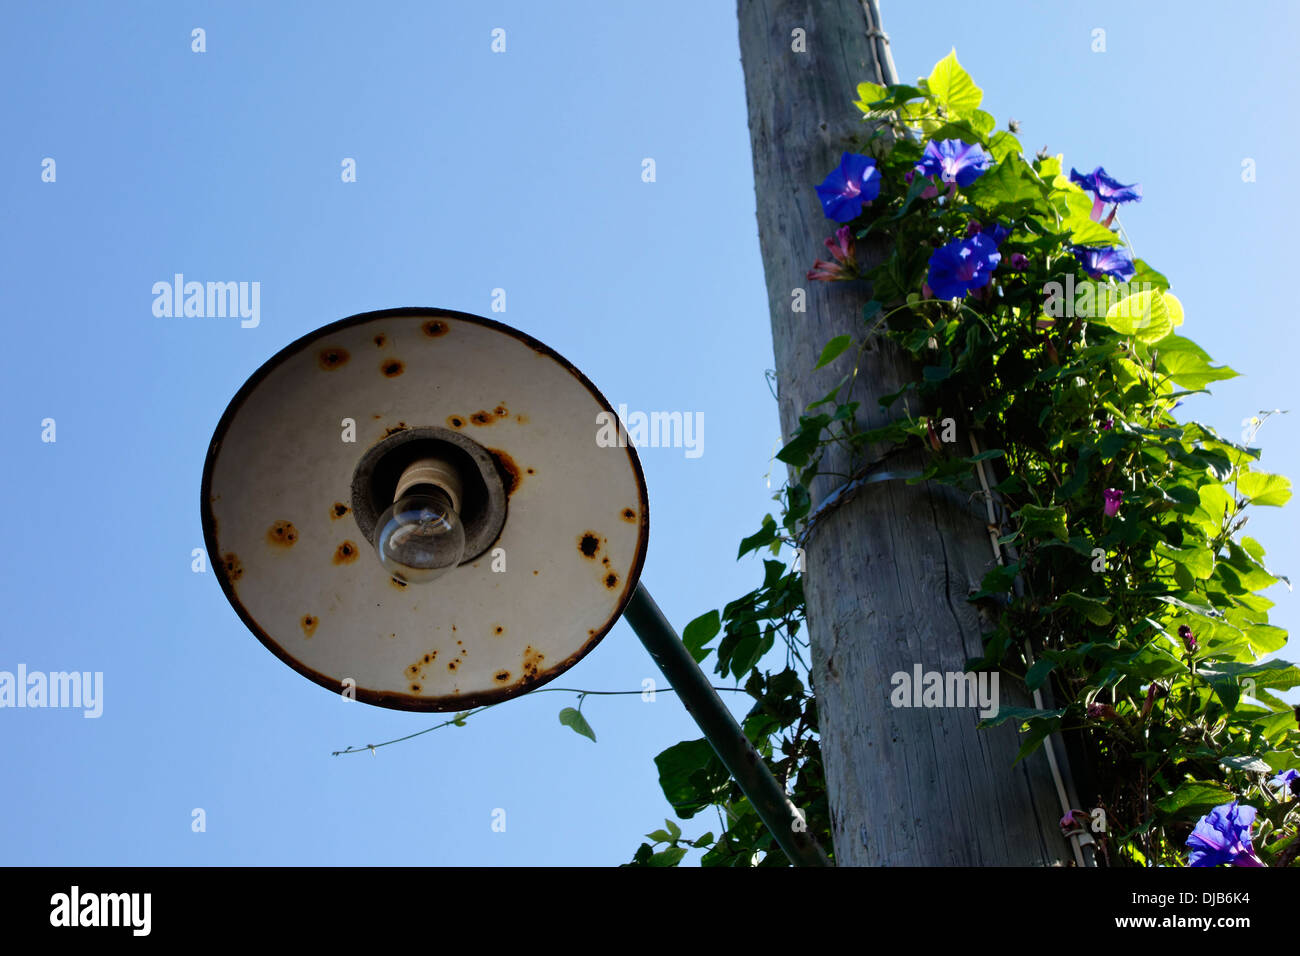 Street lamp against bright blue sky, Anacapri, Capri, Campania, Italy, Europe - Stock Image